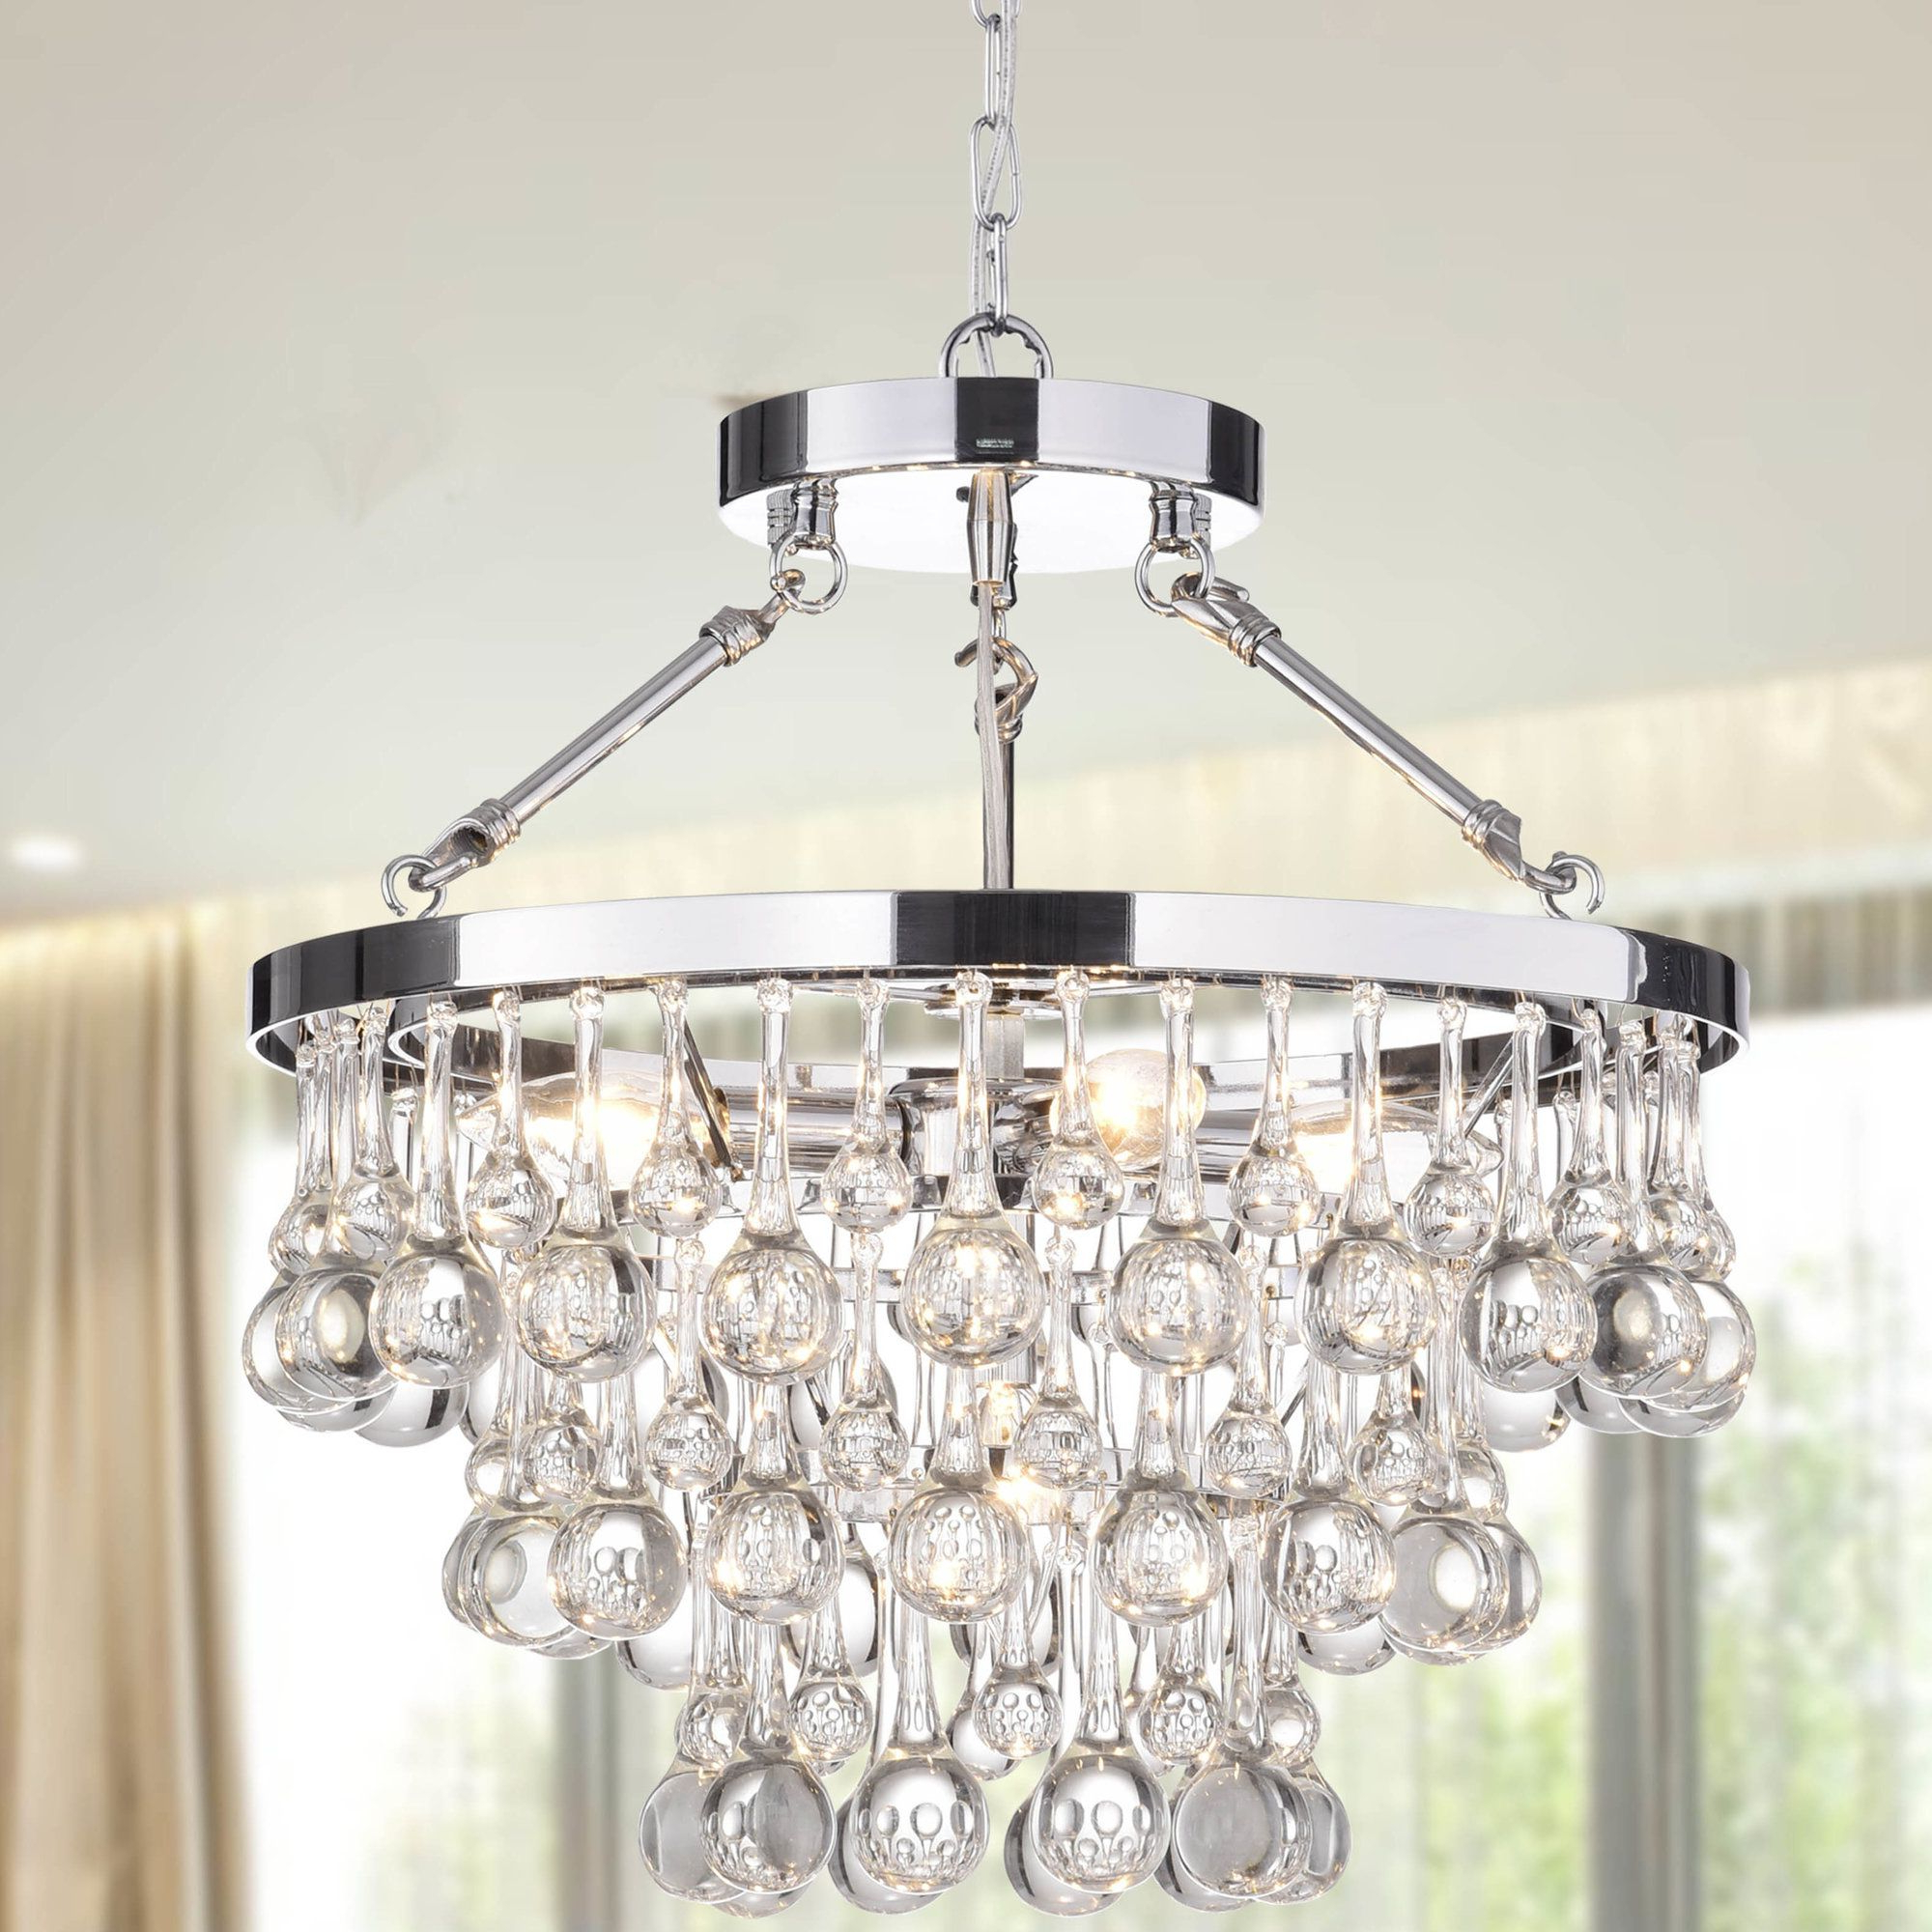 Chandelier Intended For Fashionable Bramers 6 Light Novelty Chandeliers (View 9 of 20)